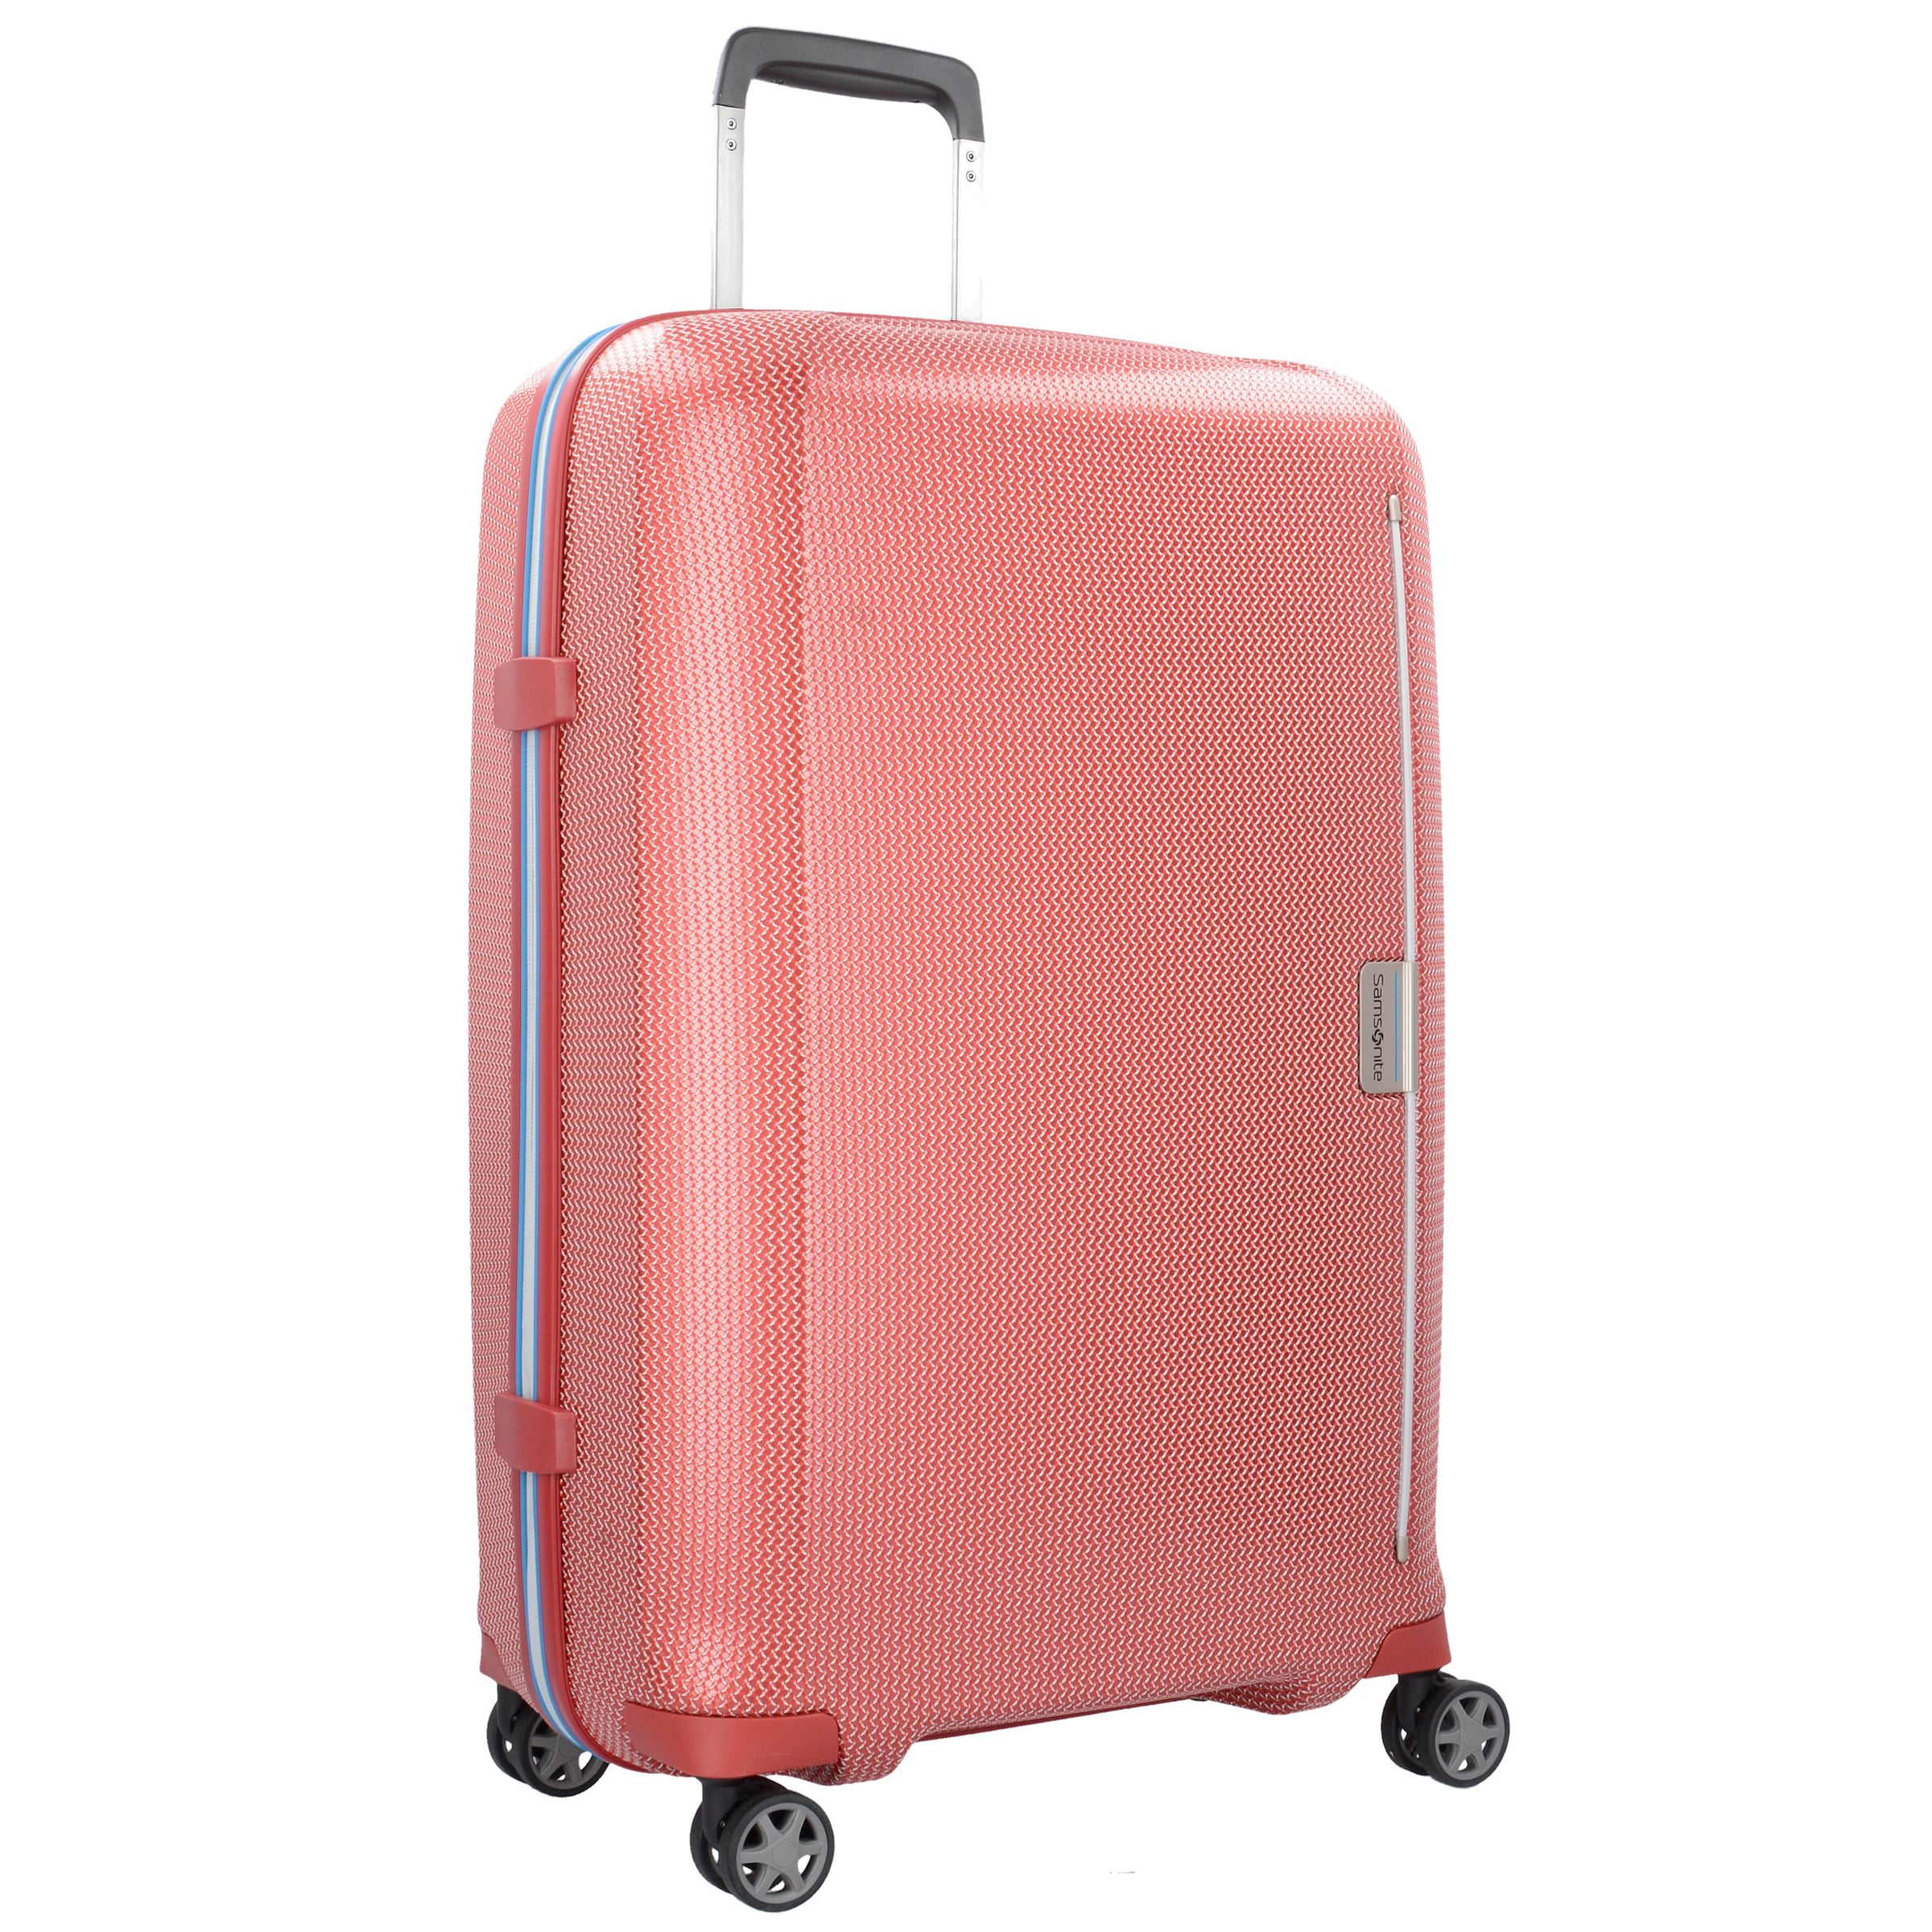 In In Trolley Samsonite Trolley Trolley Samsonite Koralle Koralle Samsonite Koralle In Nvn0m8w